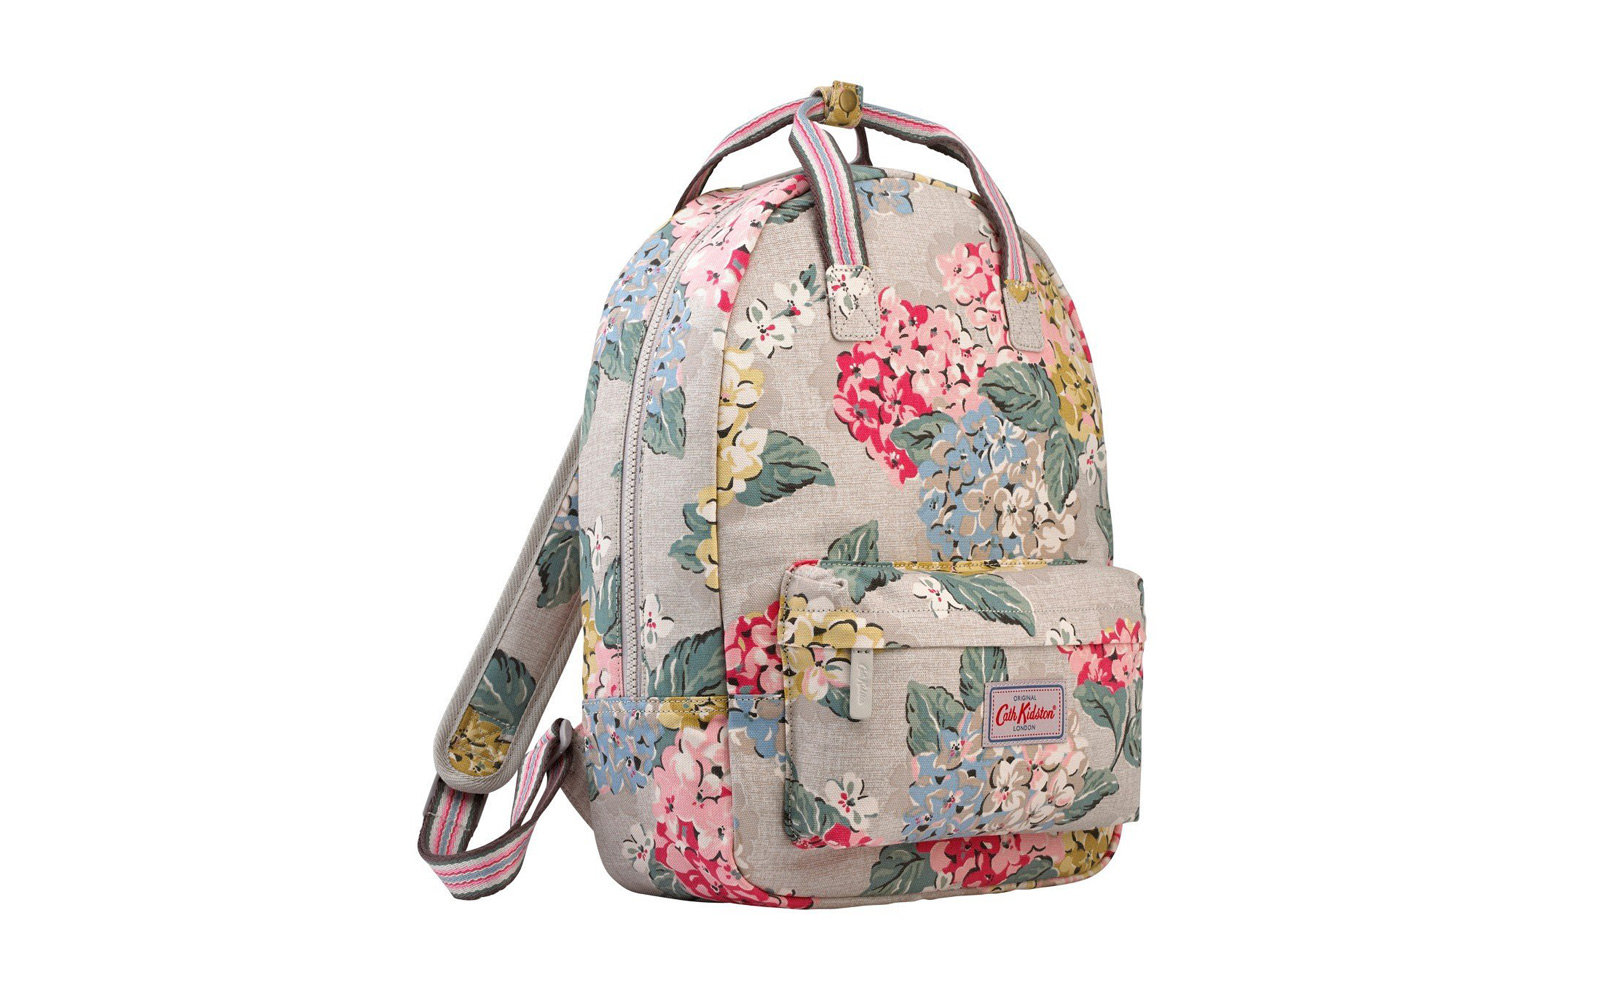 Cath Kidston Small Cotton Backpack Rucksack